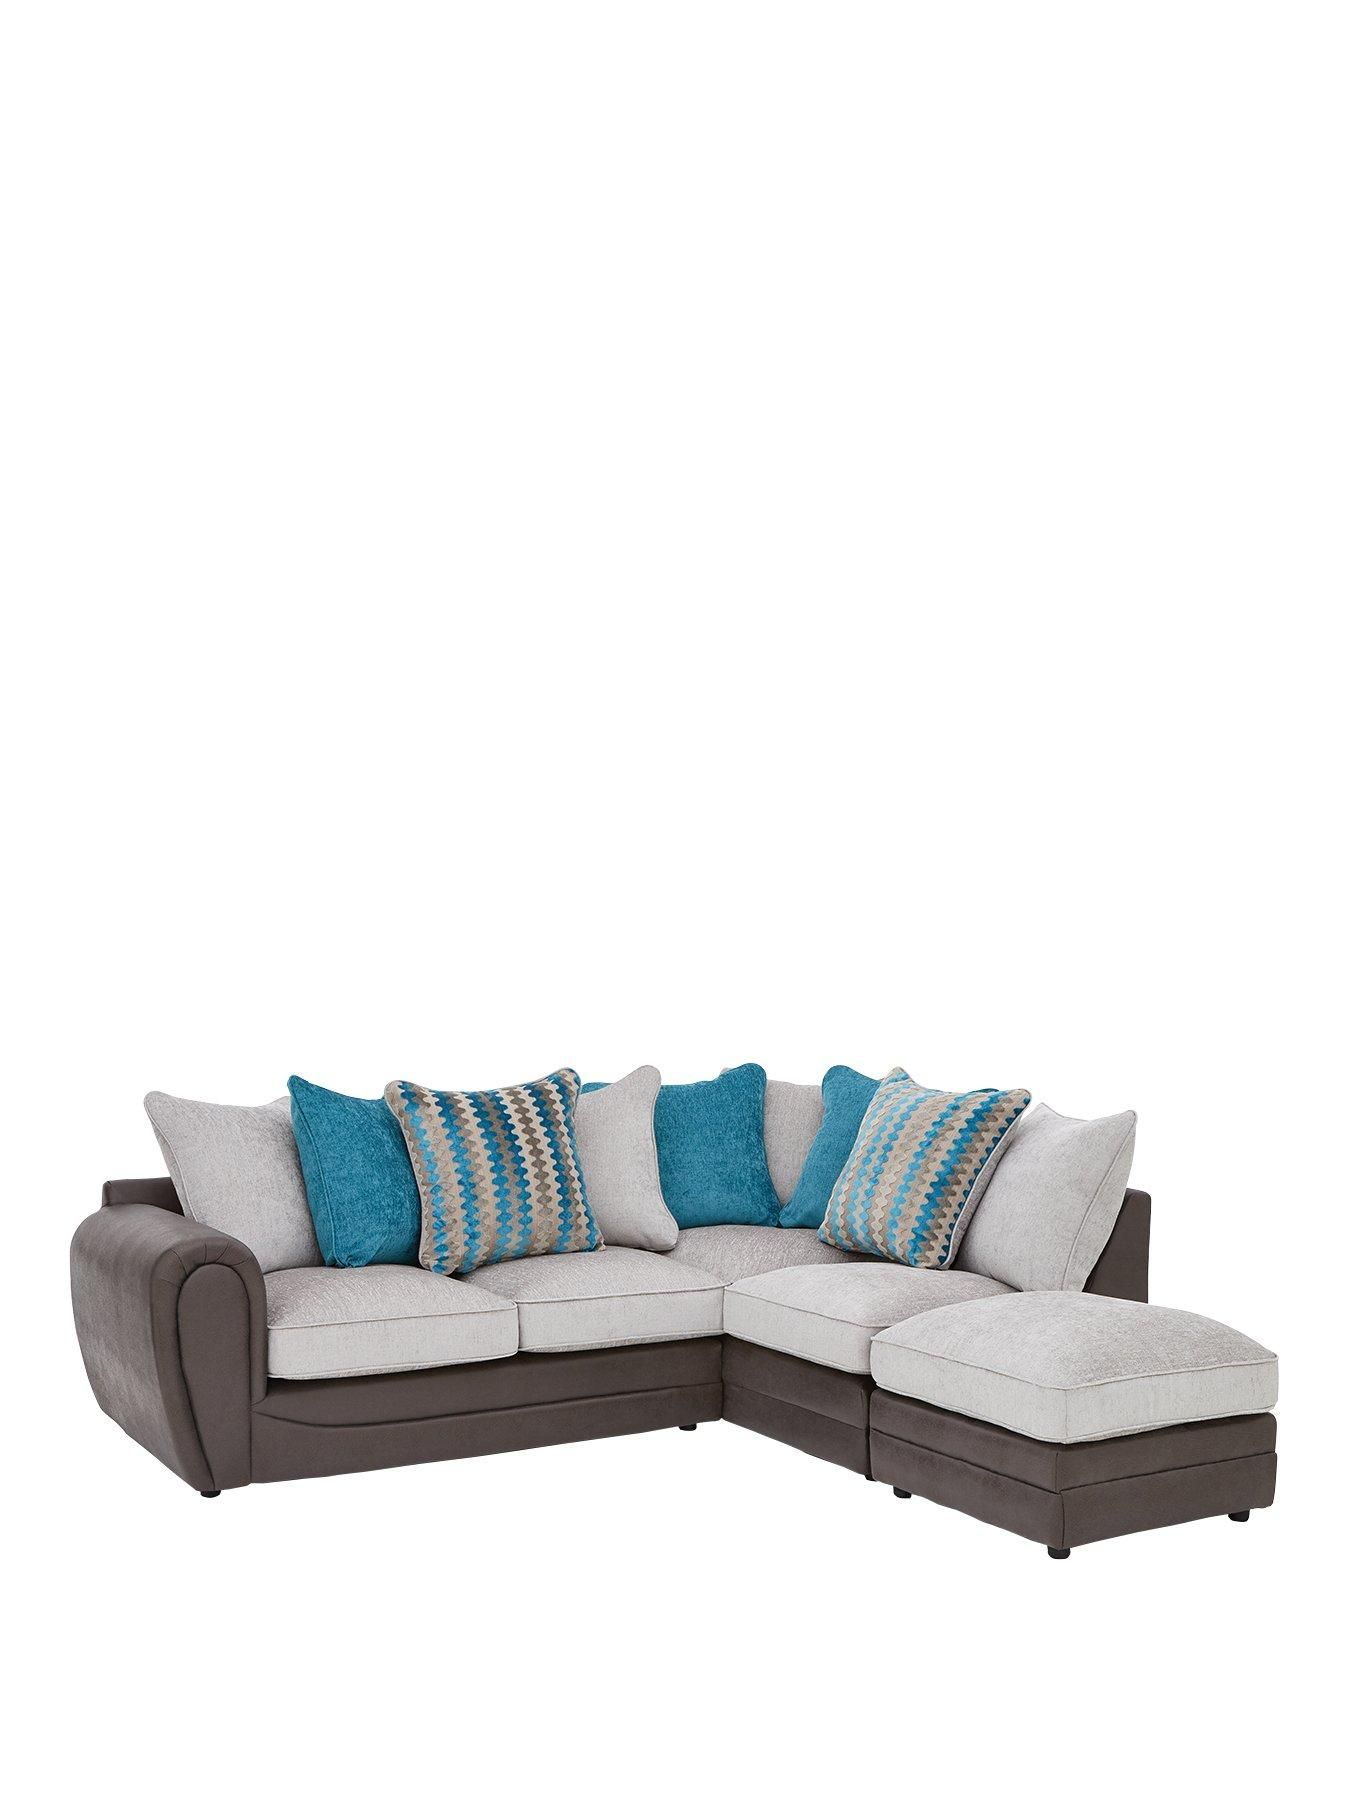 Calluna Fabric Right Hand Scatter Back Corner Chaise Sofa And Footstool In Black Grey Chaise Sofa Sofa New Furniture